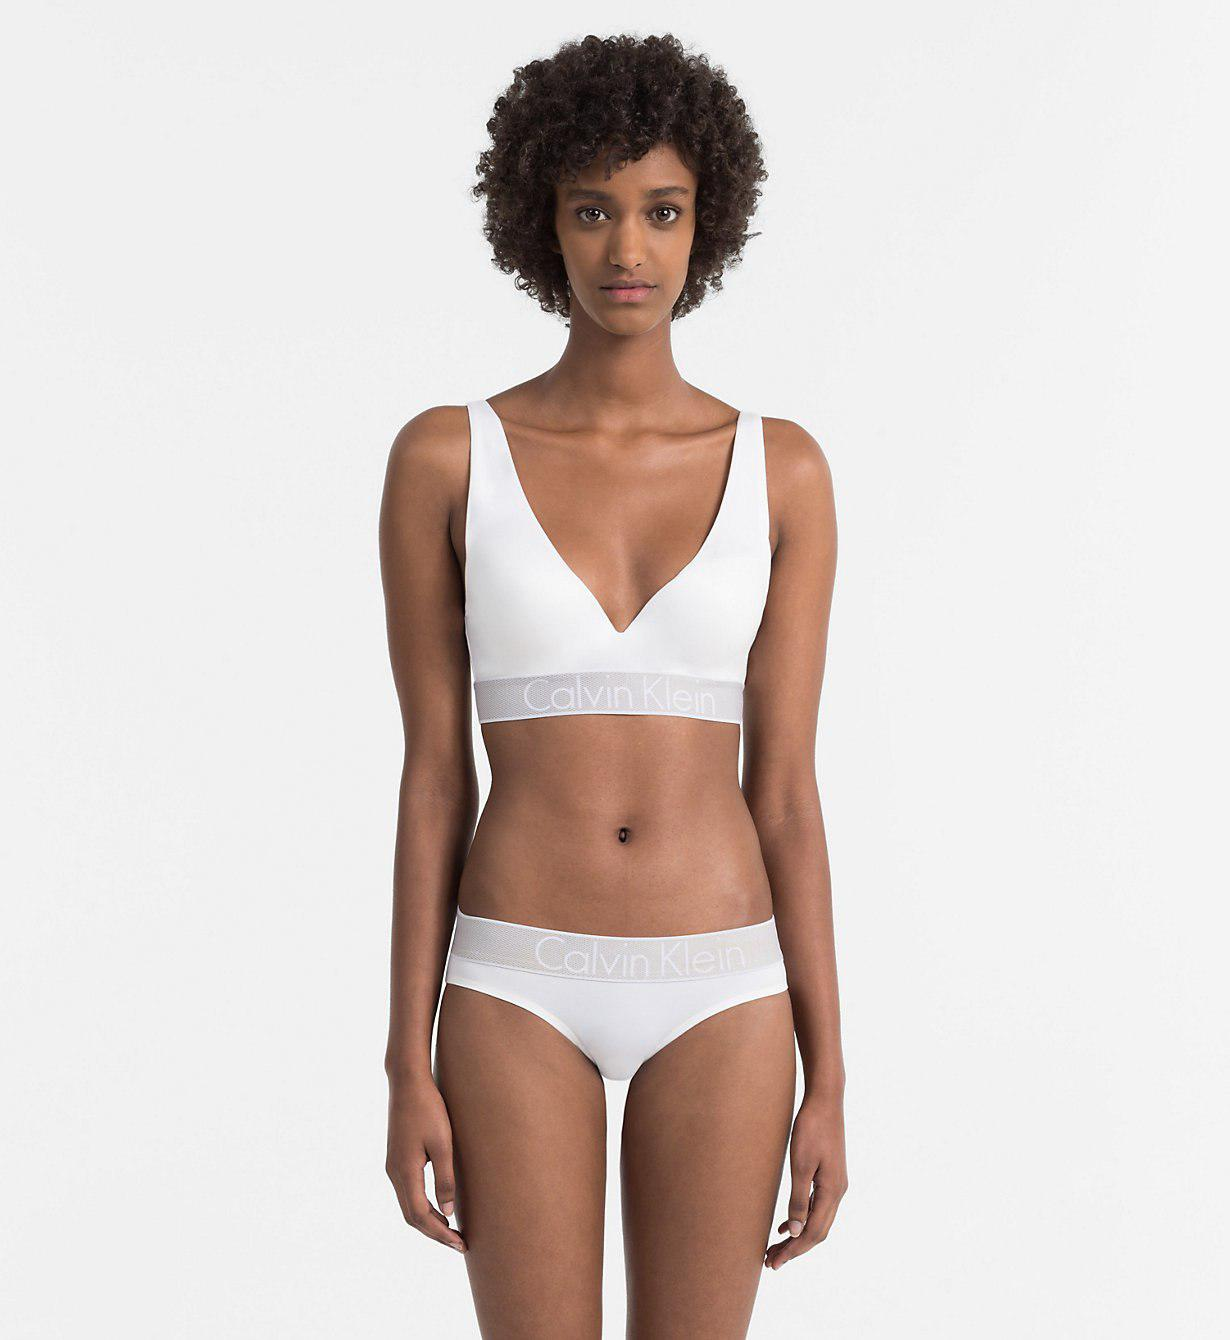 533529b657af1 Calvin Klein - White Plunge Push-up Bra - Customized Stretch - Lyst. View  fullscreen